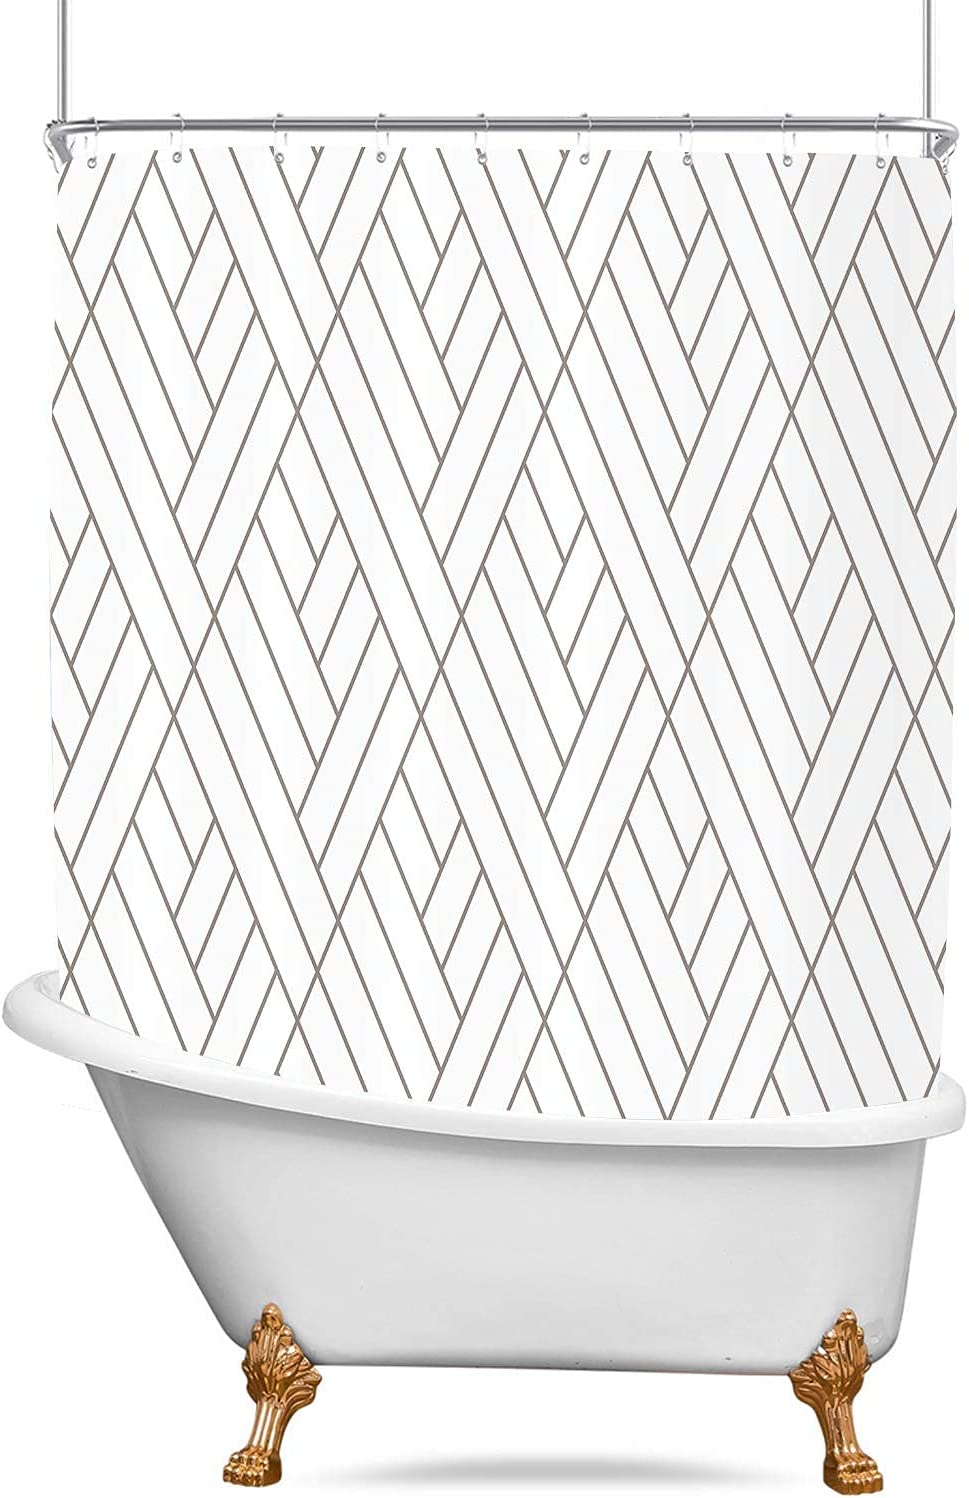 D&M Clawfoot Tub Shower Curtain Liner 180x70 inch 36 Metal Shower Hooks Striped Geometric Extra Wide Wrap Around Lines White and Gray Bath Shower Curtain for Bathroom Bathtub Decor Polyester Fabric